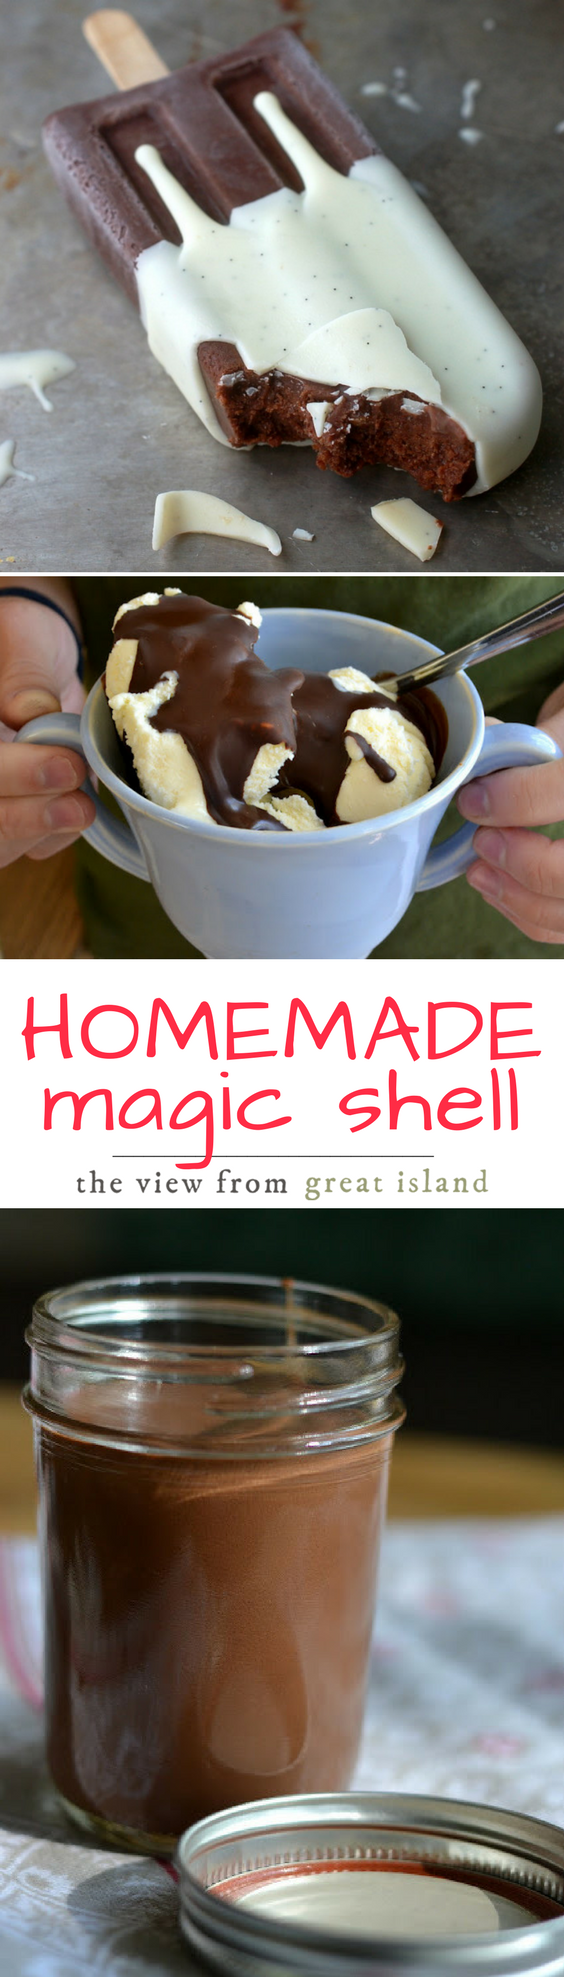 How to Make Homemade Magic Shell | The View from Great Island